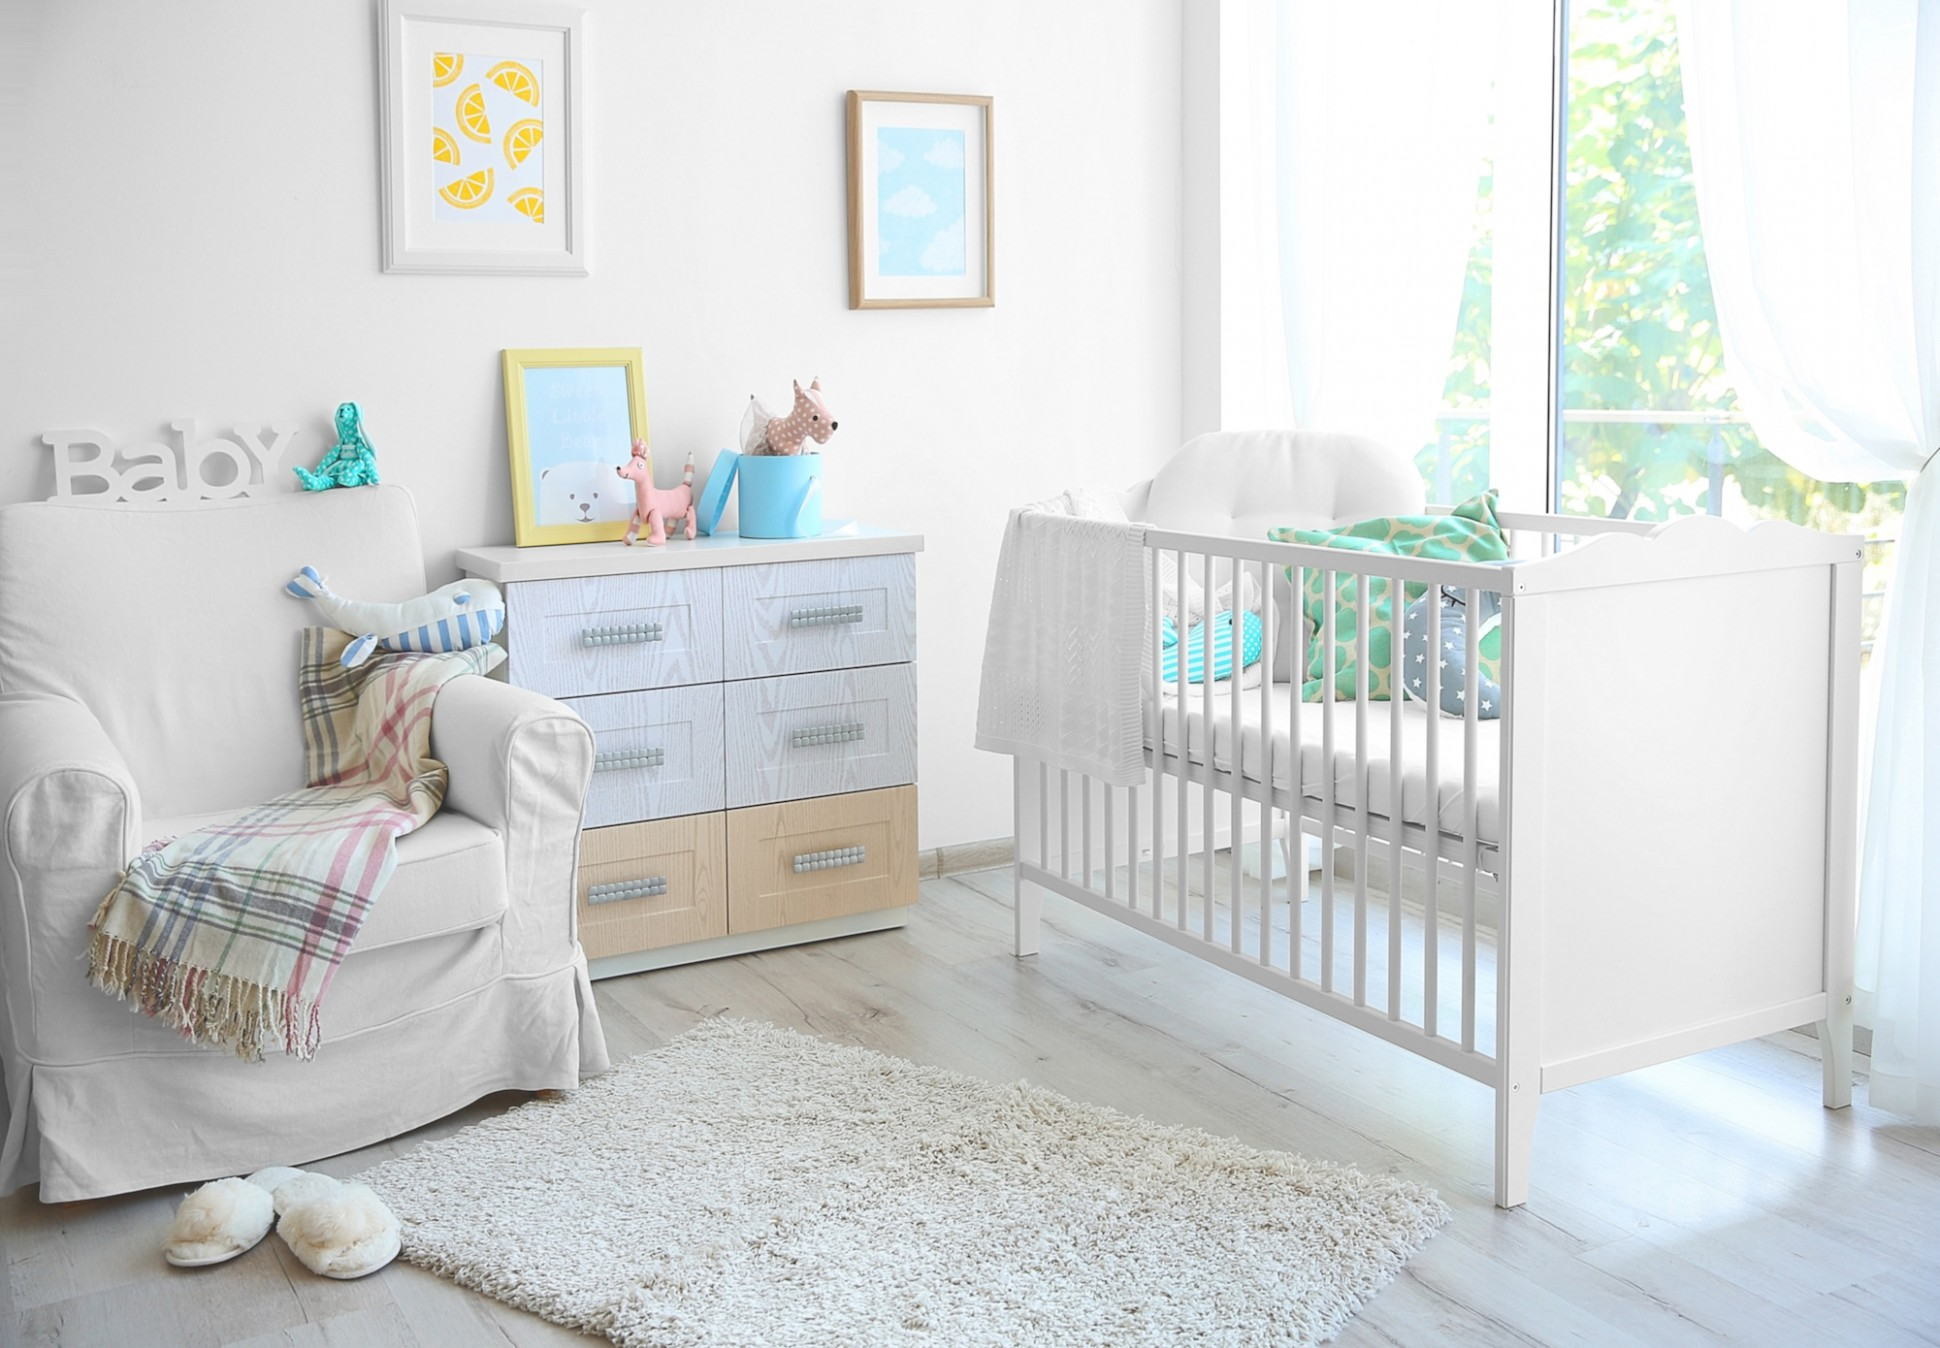 Baby Nursery - Decor & Furniture Ideas  Parents - Baby Room Furniture